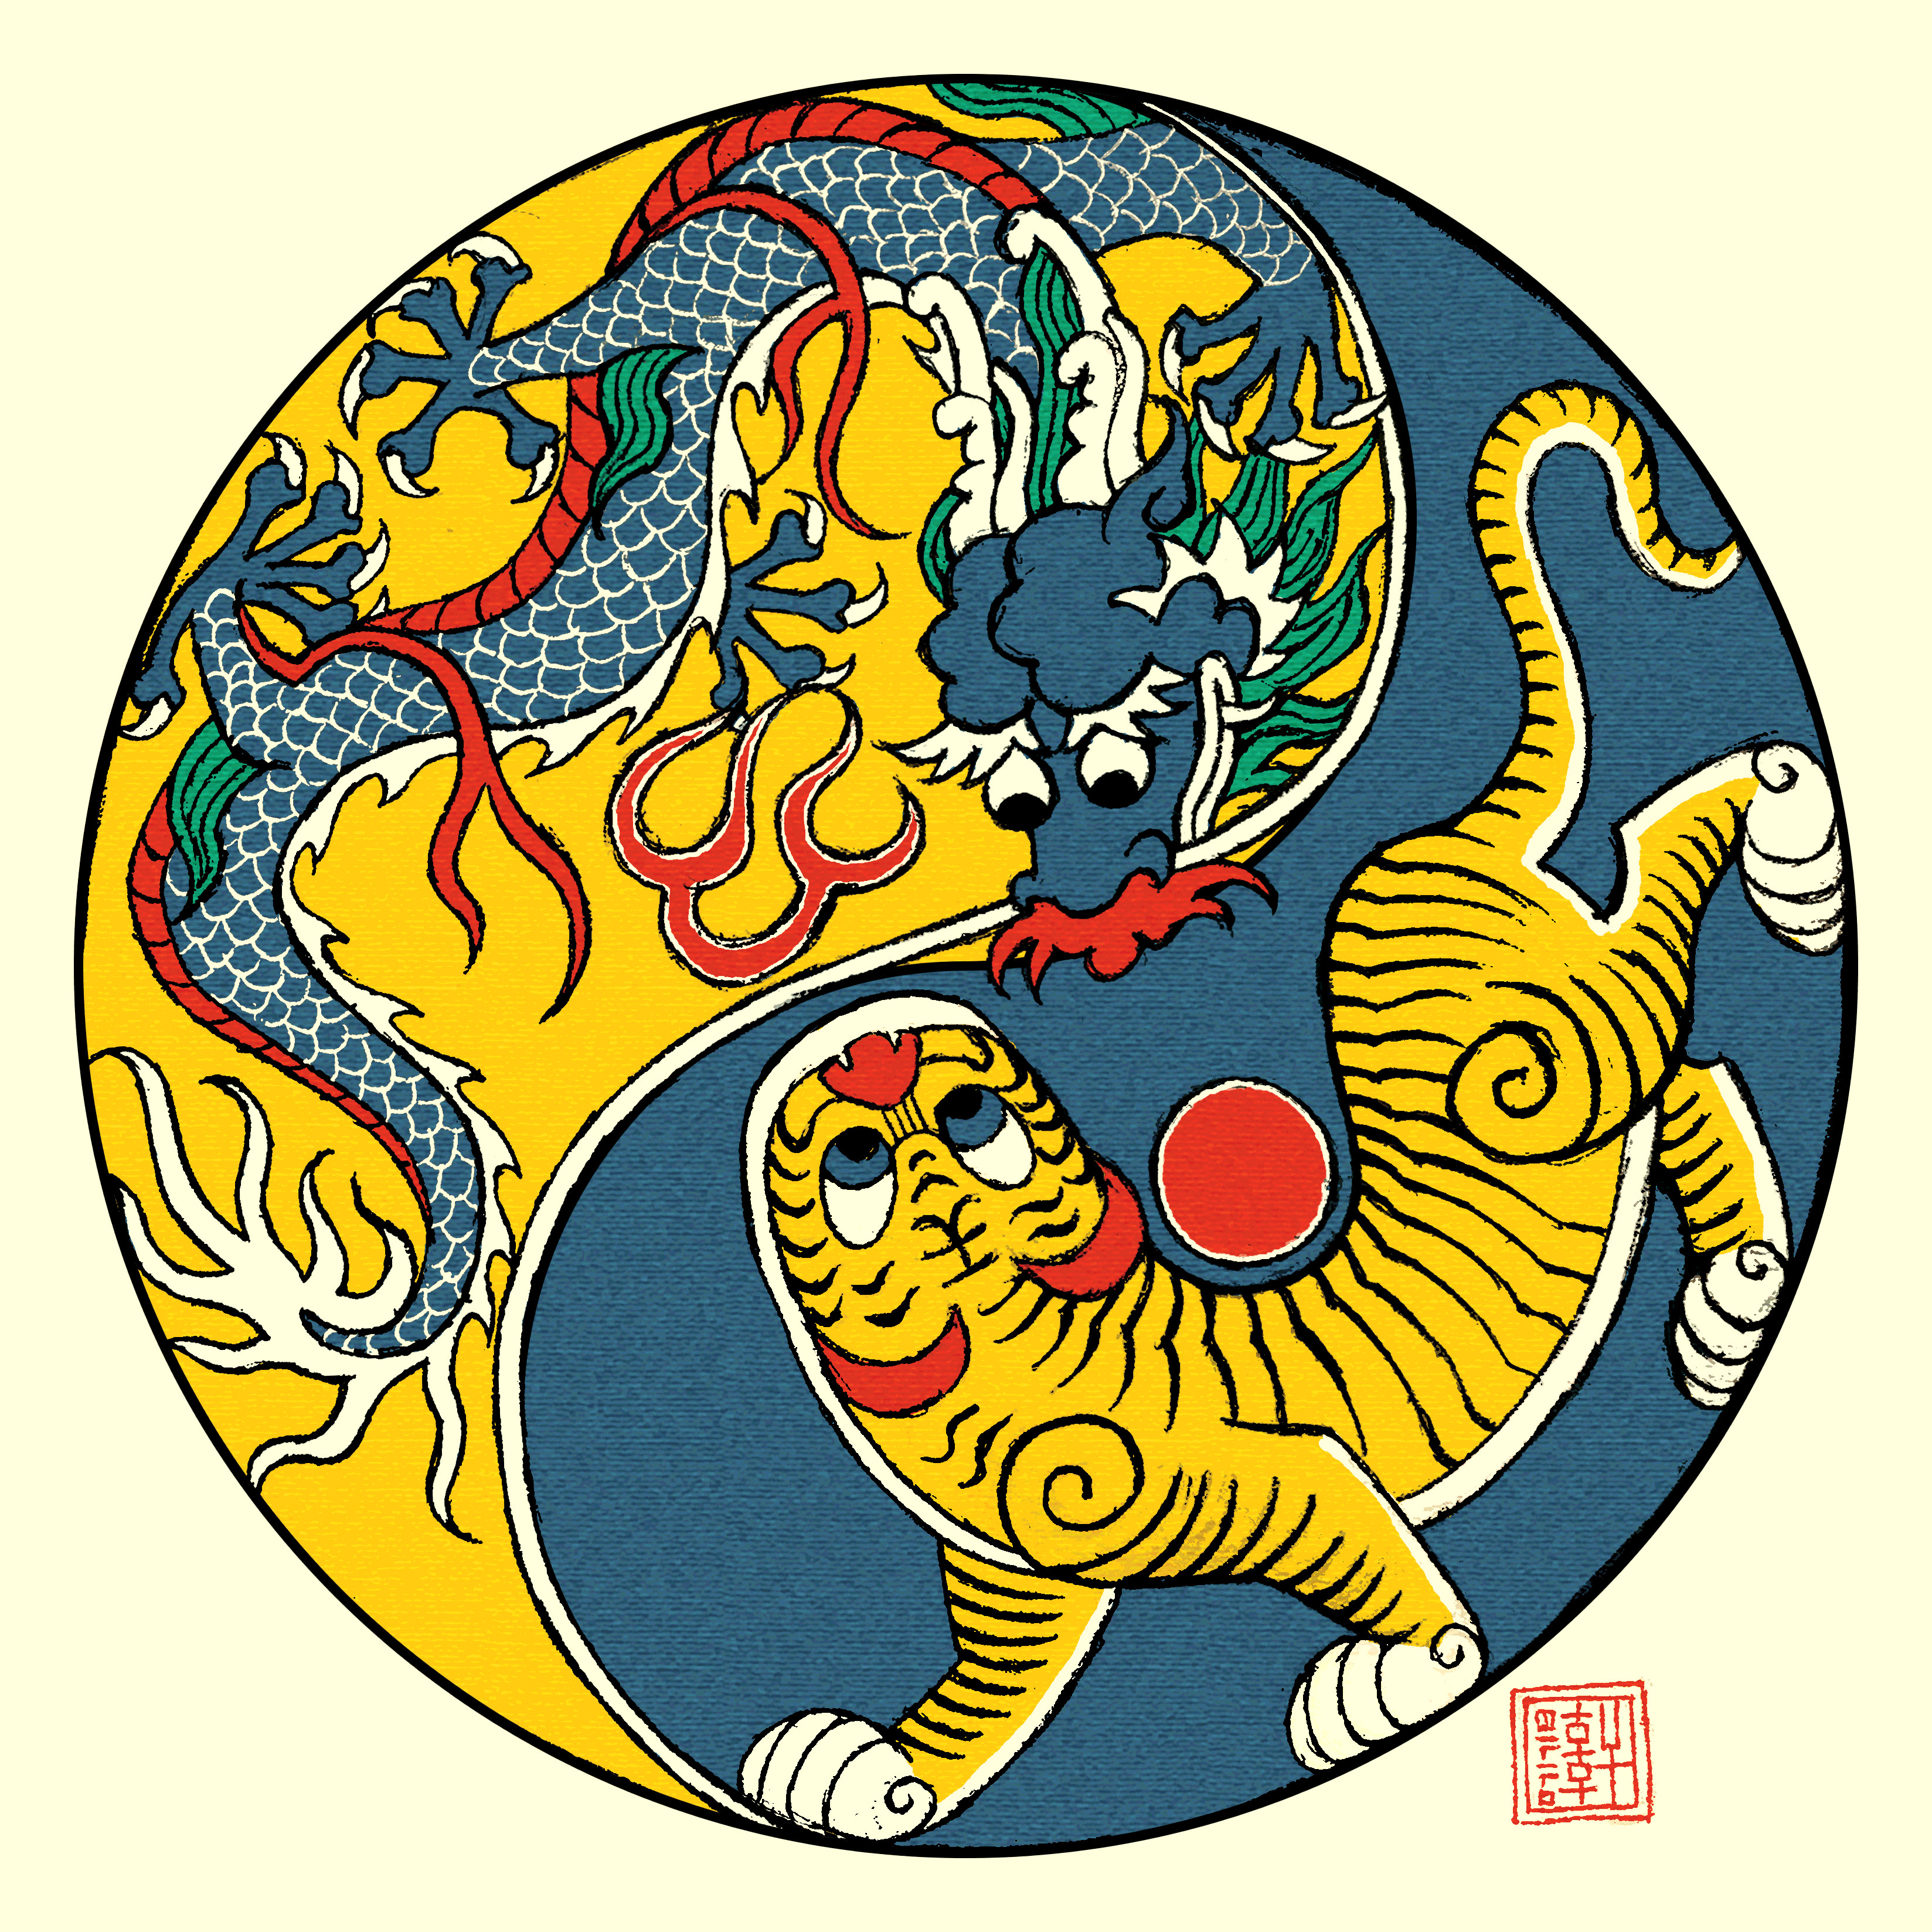 Blue Dragon and Yellow Tiger